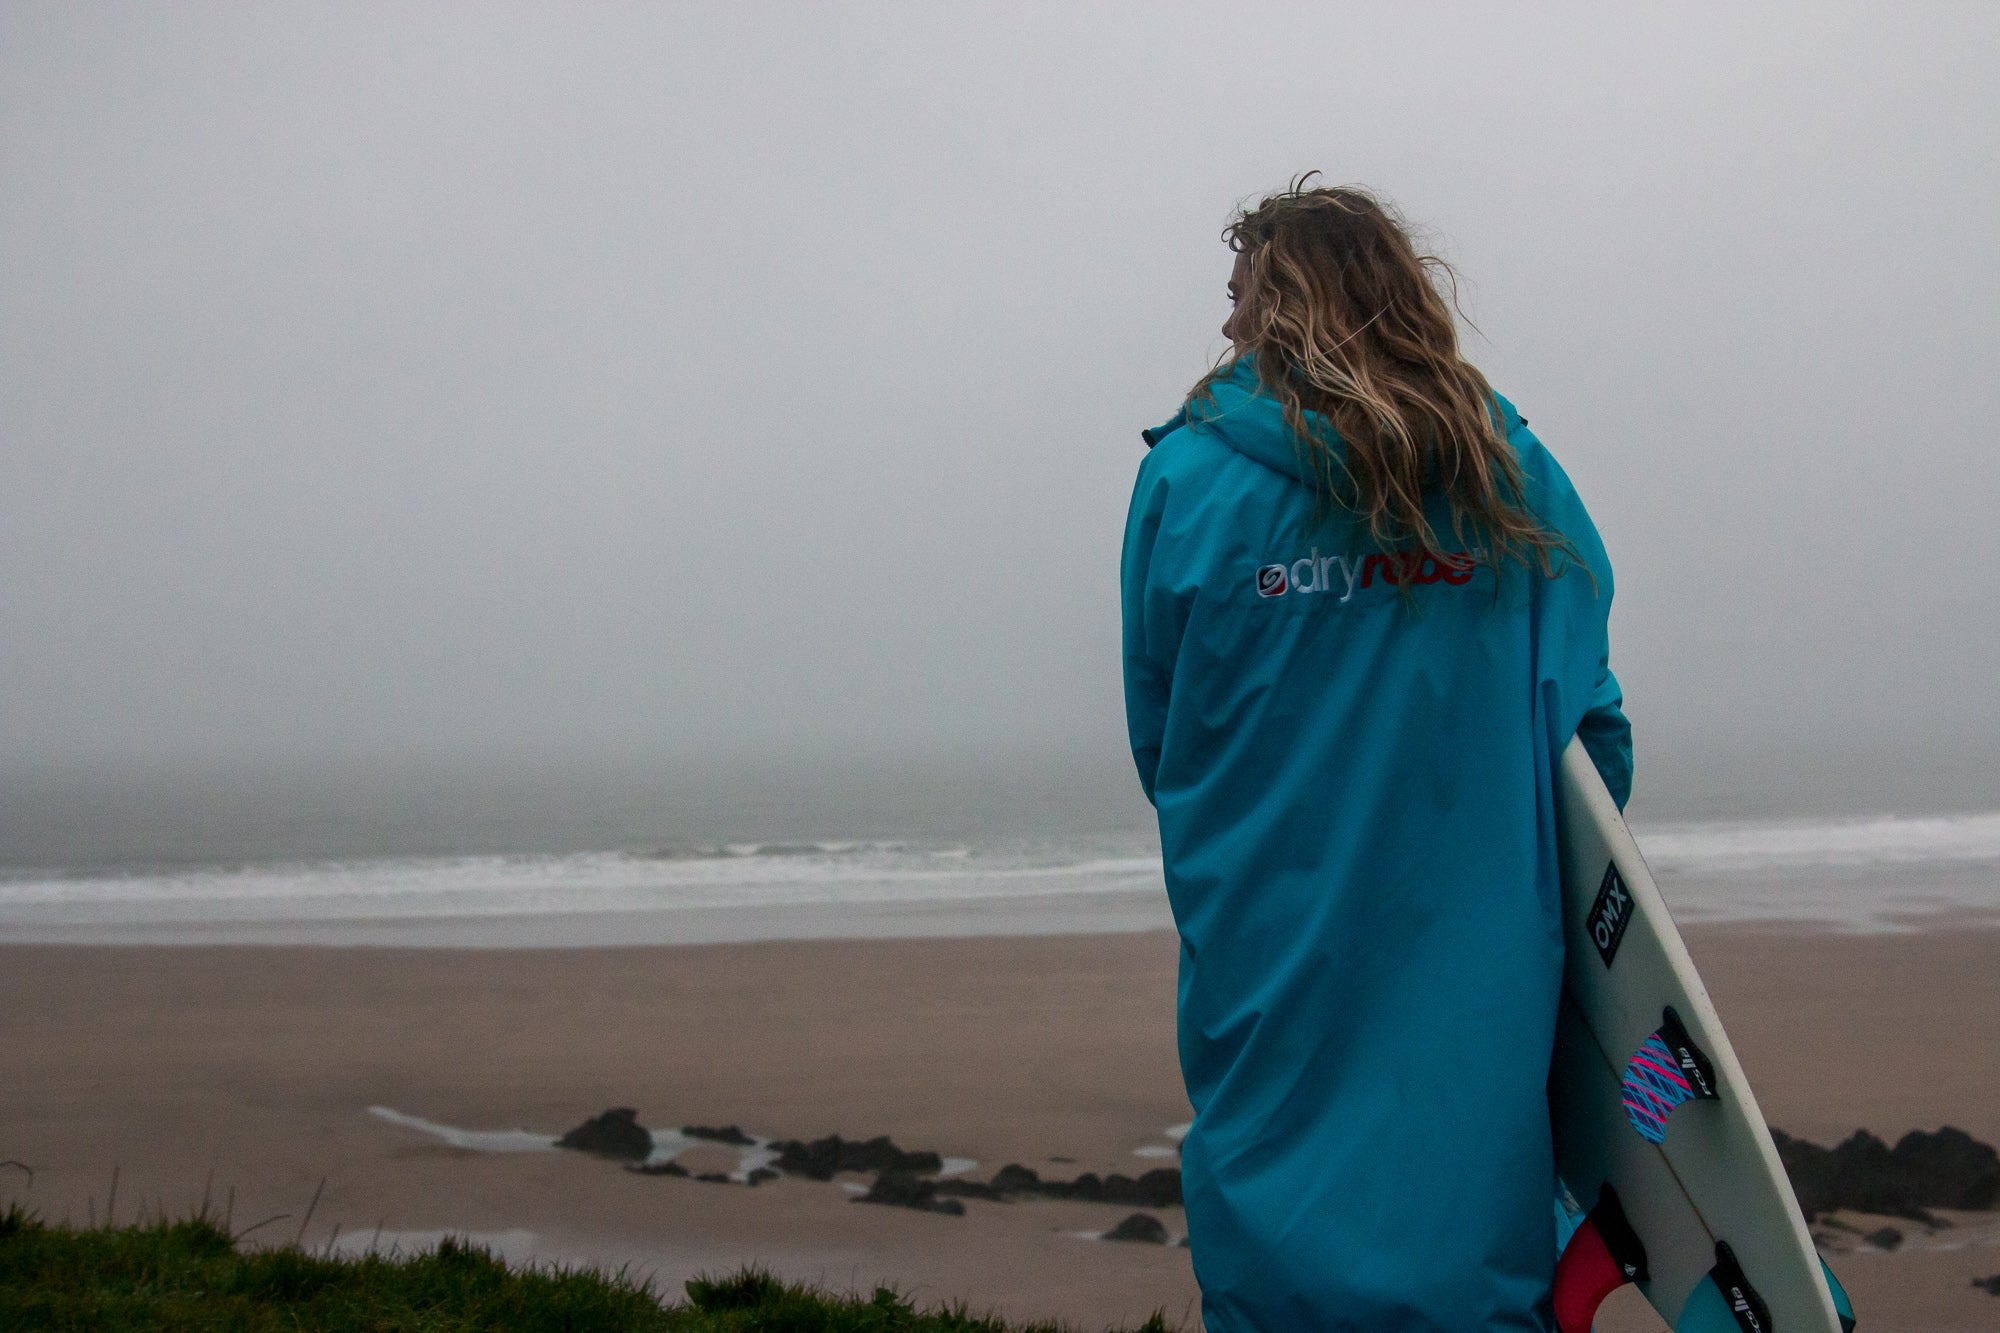 English Women's Surf Champion Lucy Campbell getting ready to surf